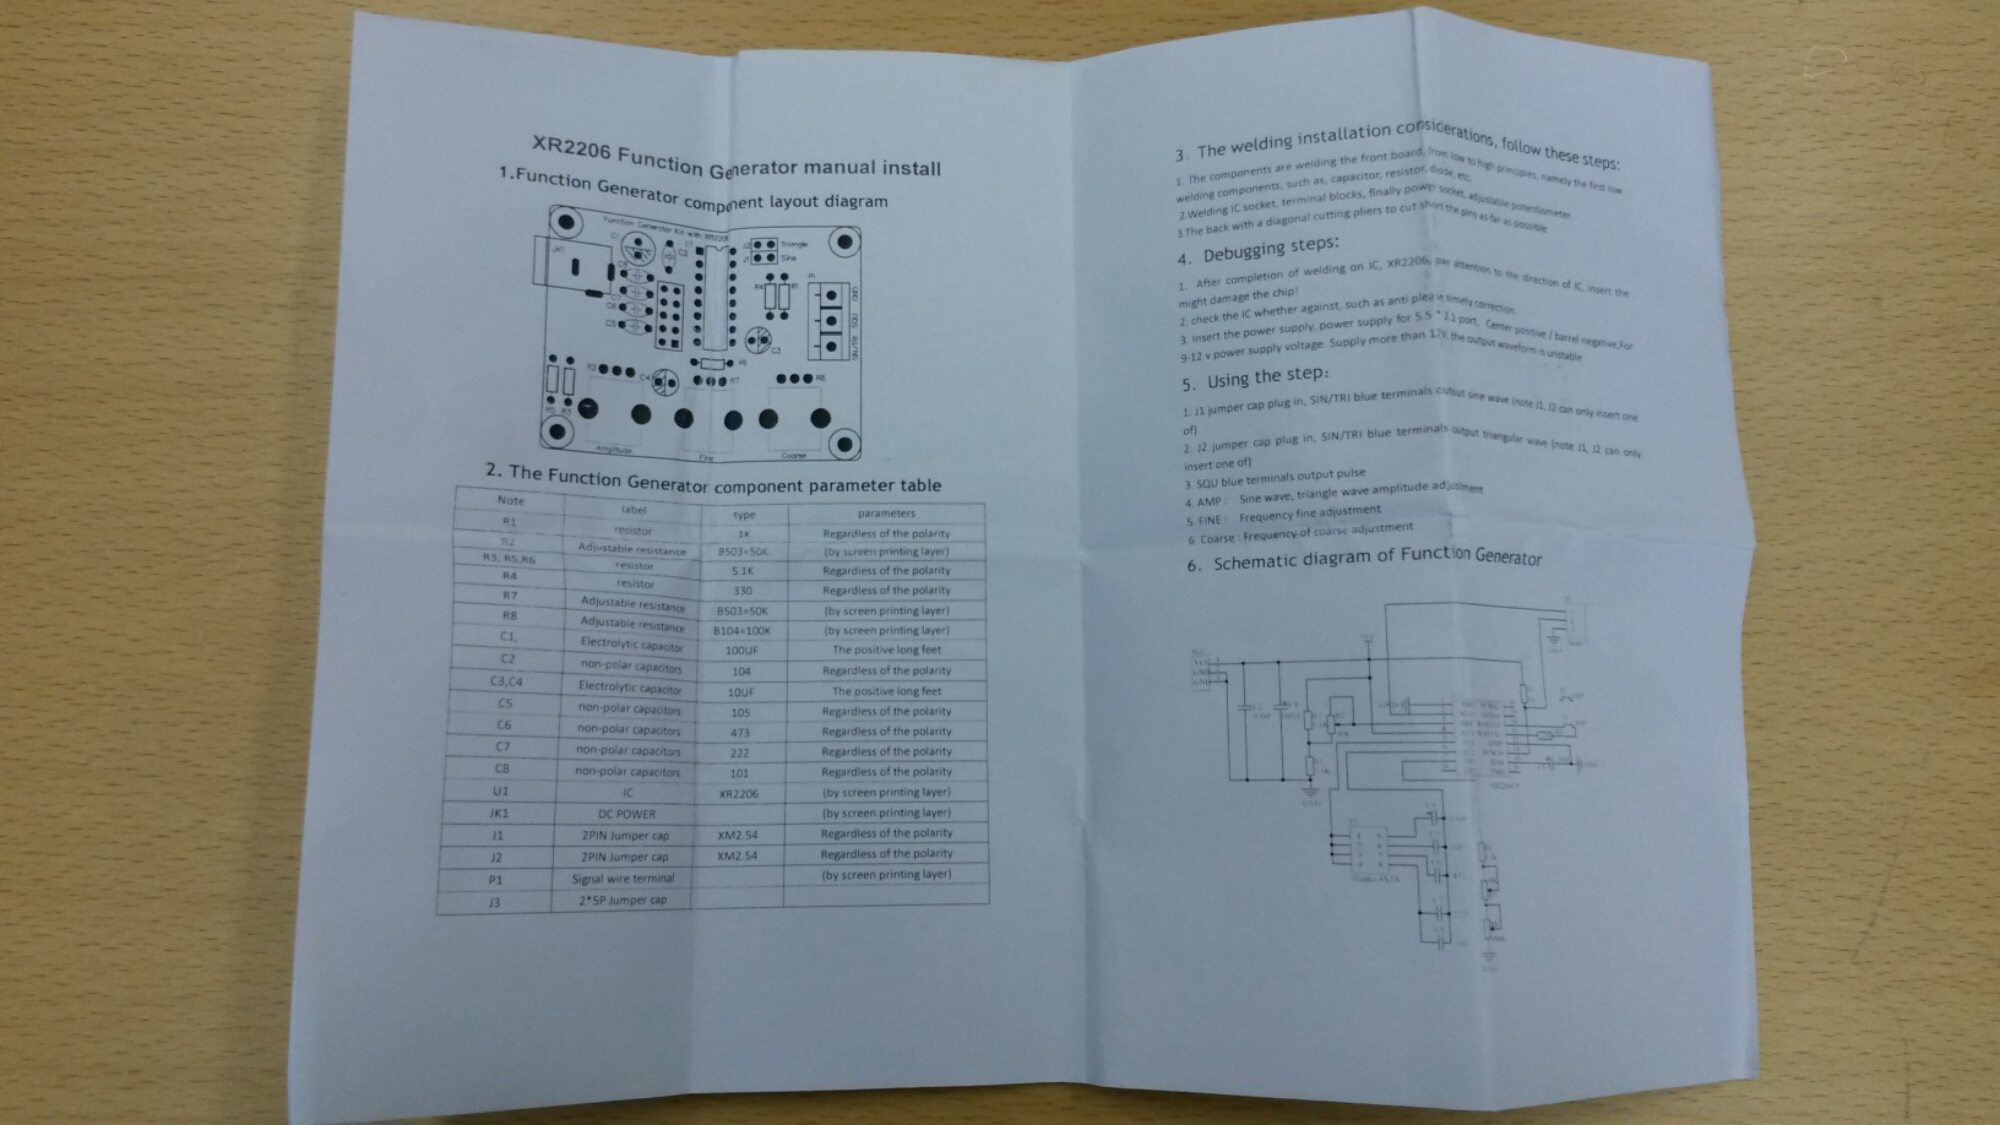 Function Generator Kit Working Of Circuit Came With Instructions That Had Full Diagram